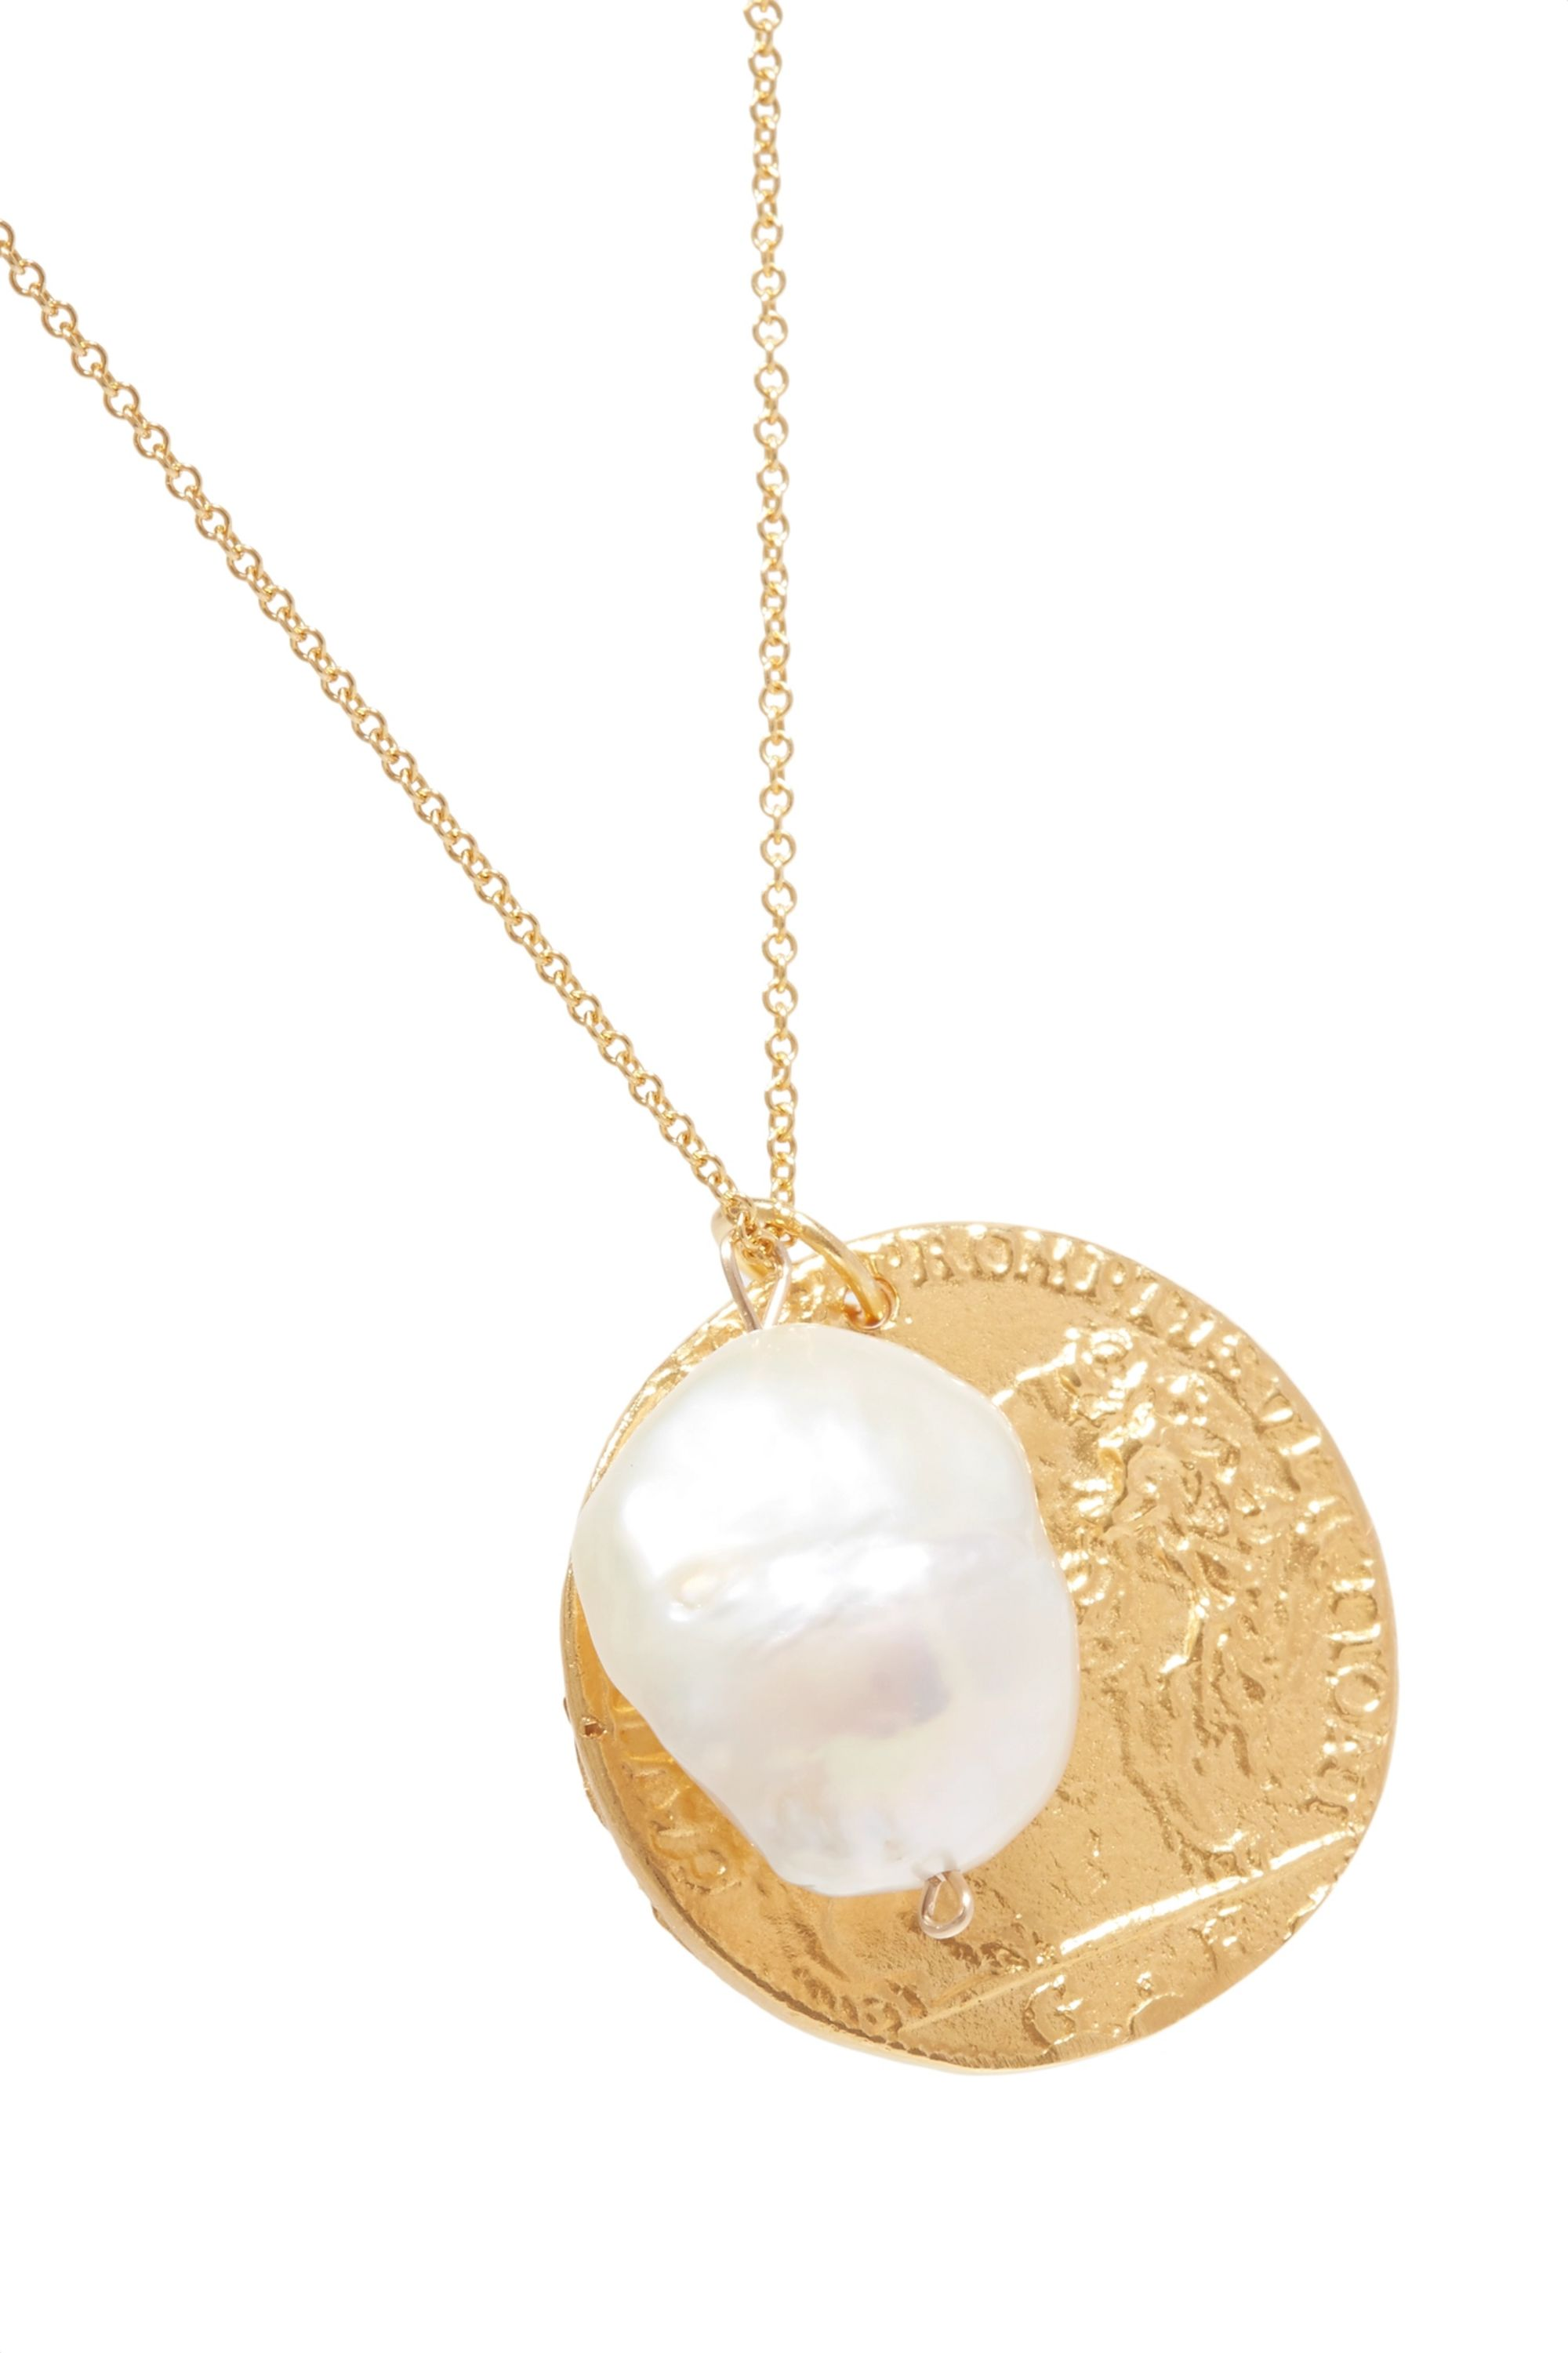 Alighieri The Remedy Chapter ii gold-plated pearl necklace